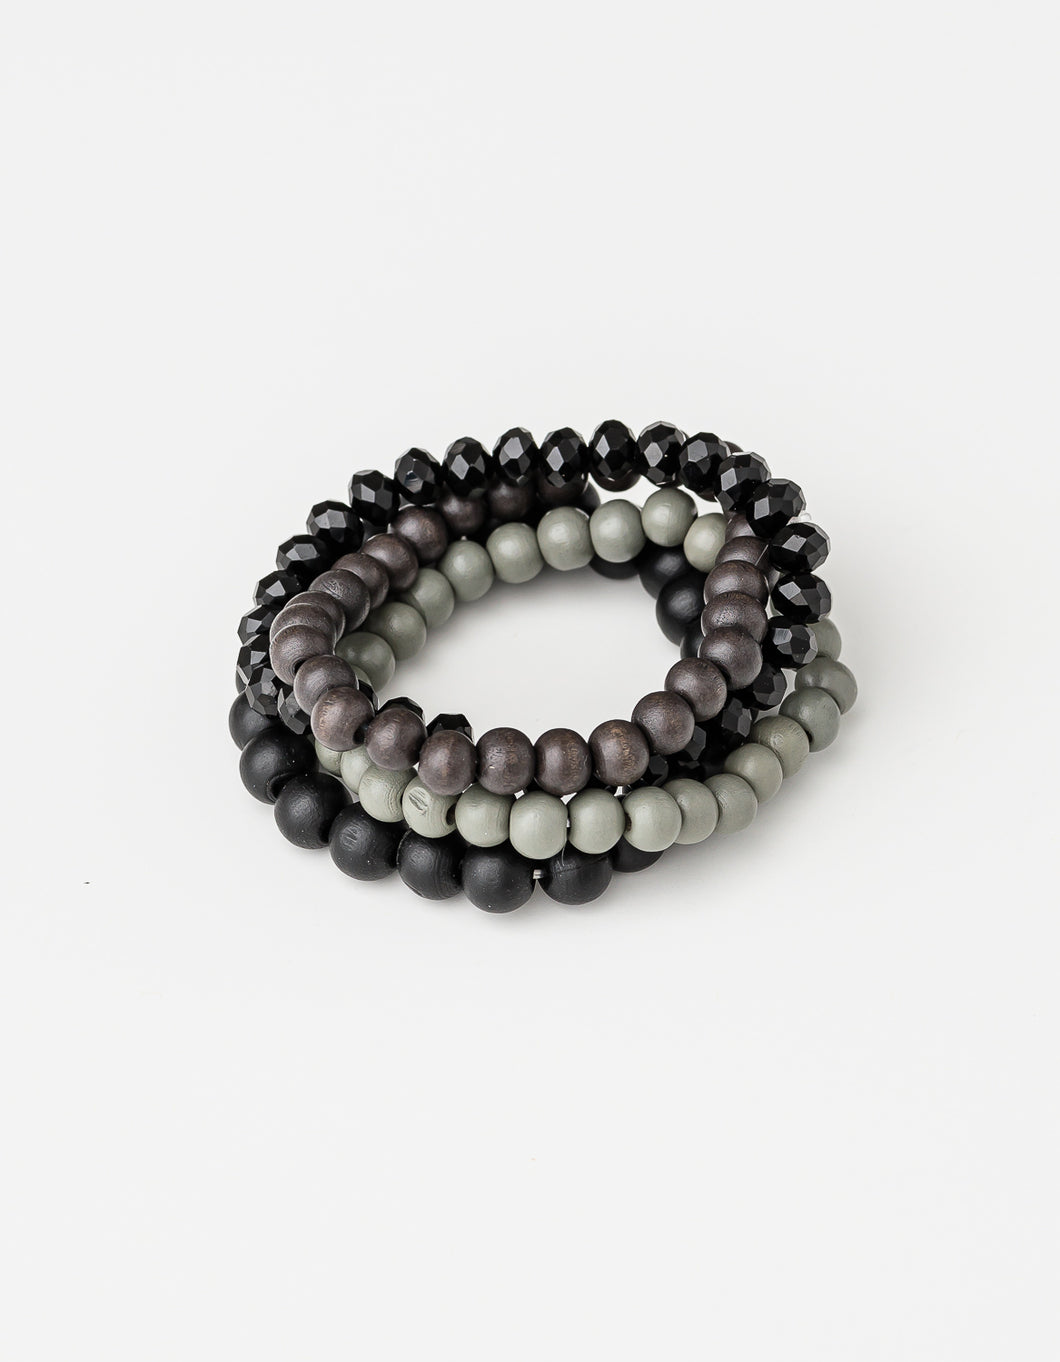 Grey/Black Bead Bracelets- Set of 4